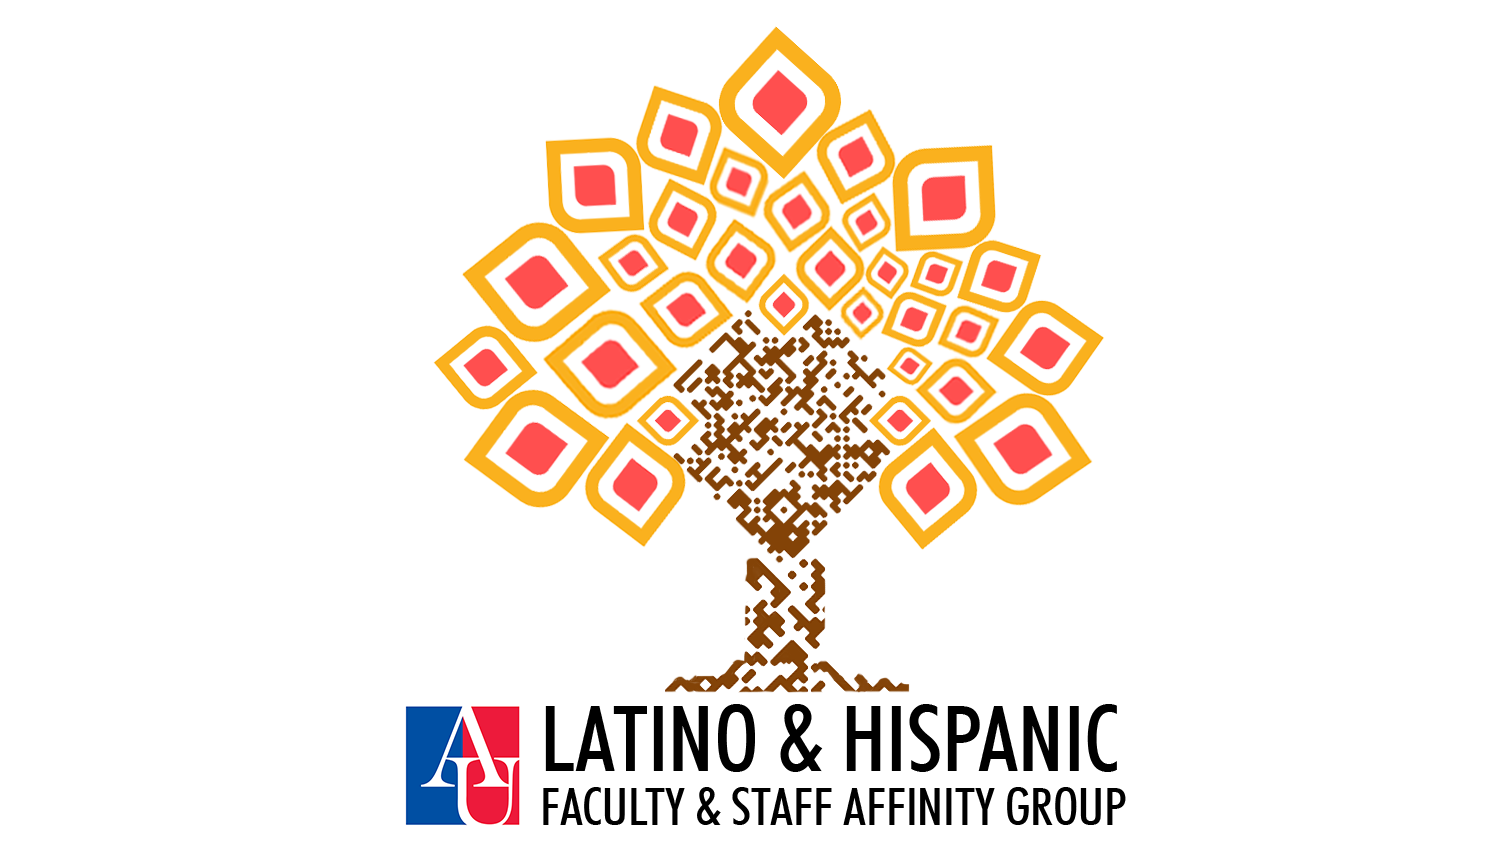 American University's Latino and Hispanic Faculty & Staff Affinity Group